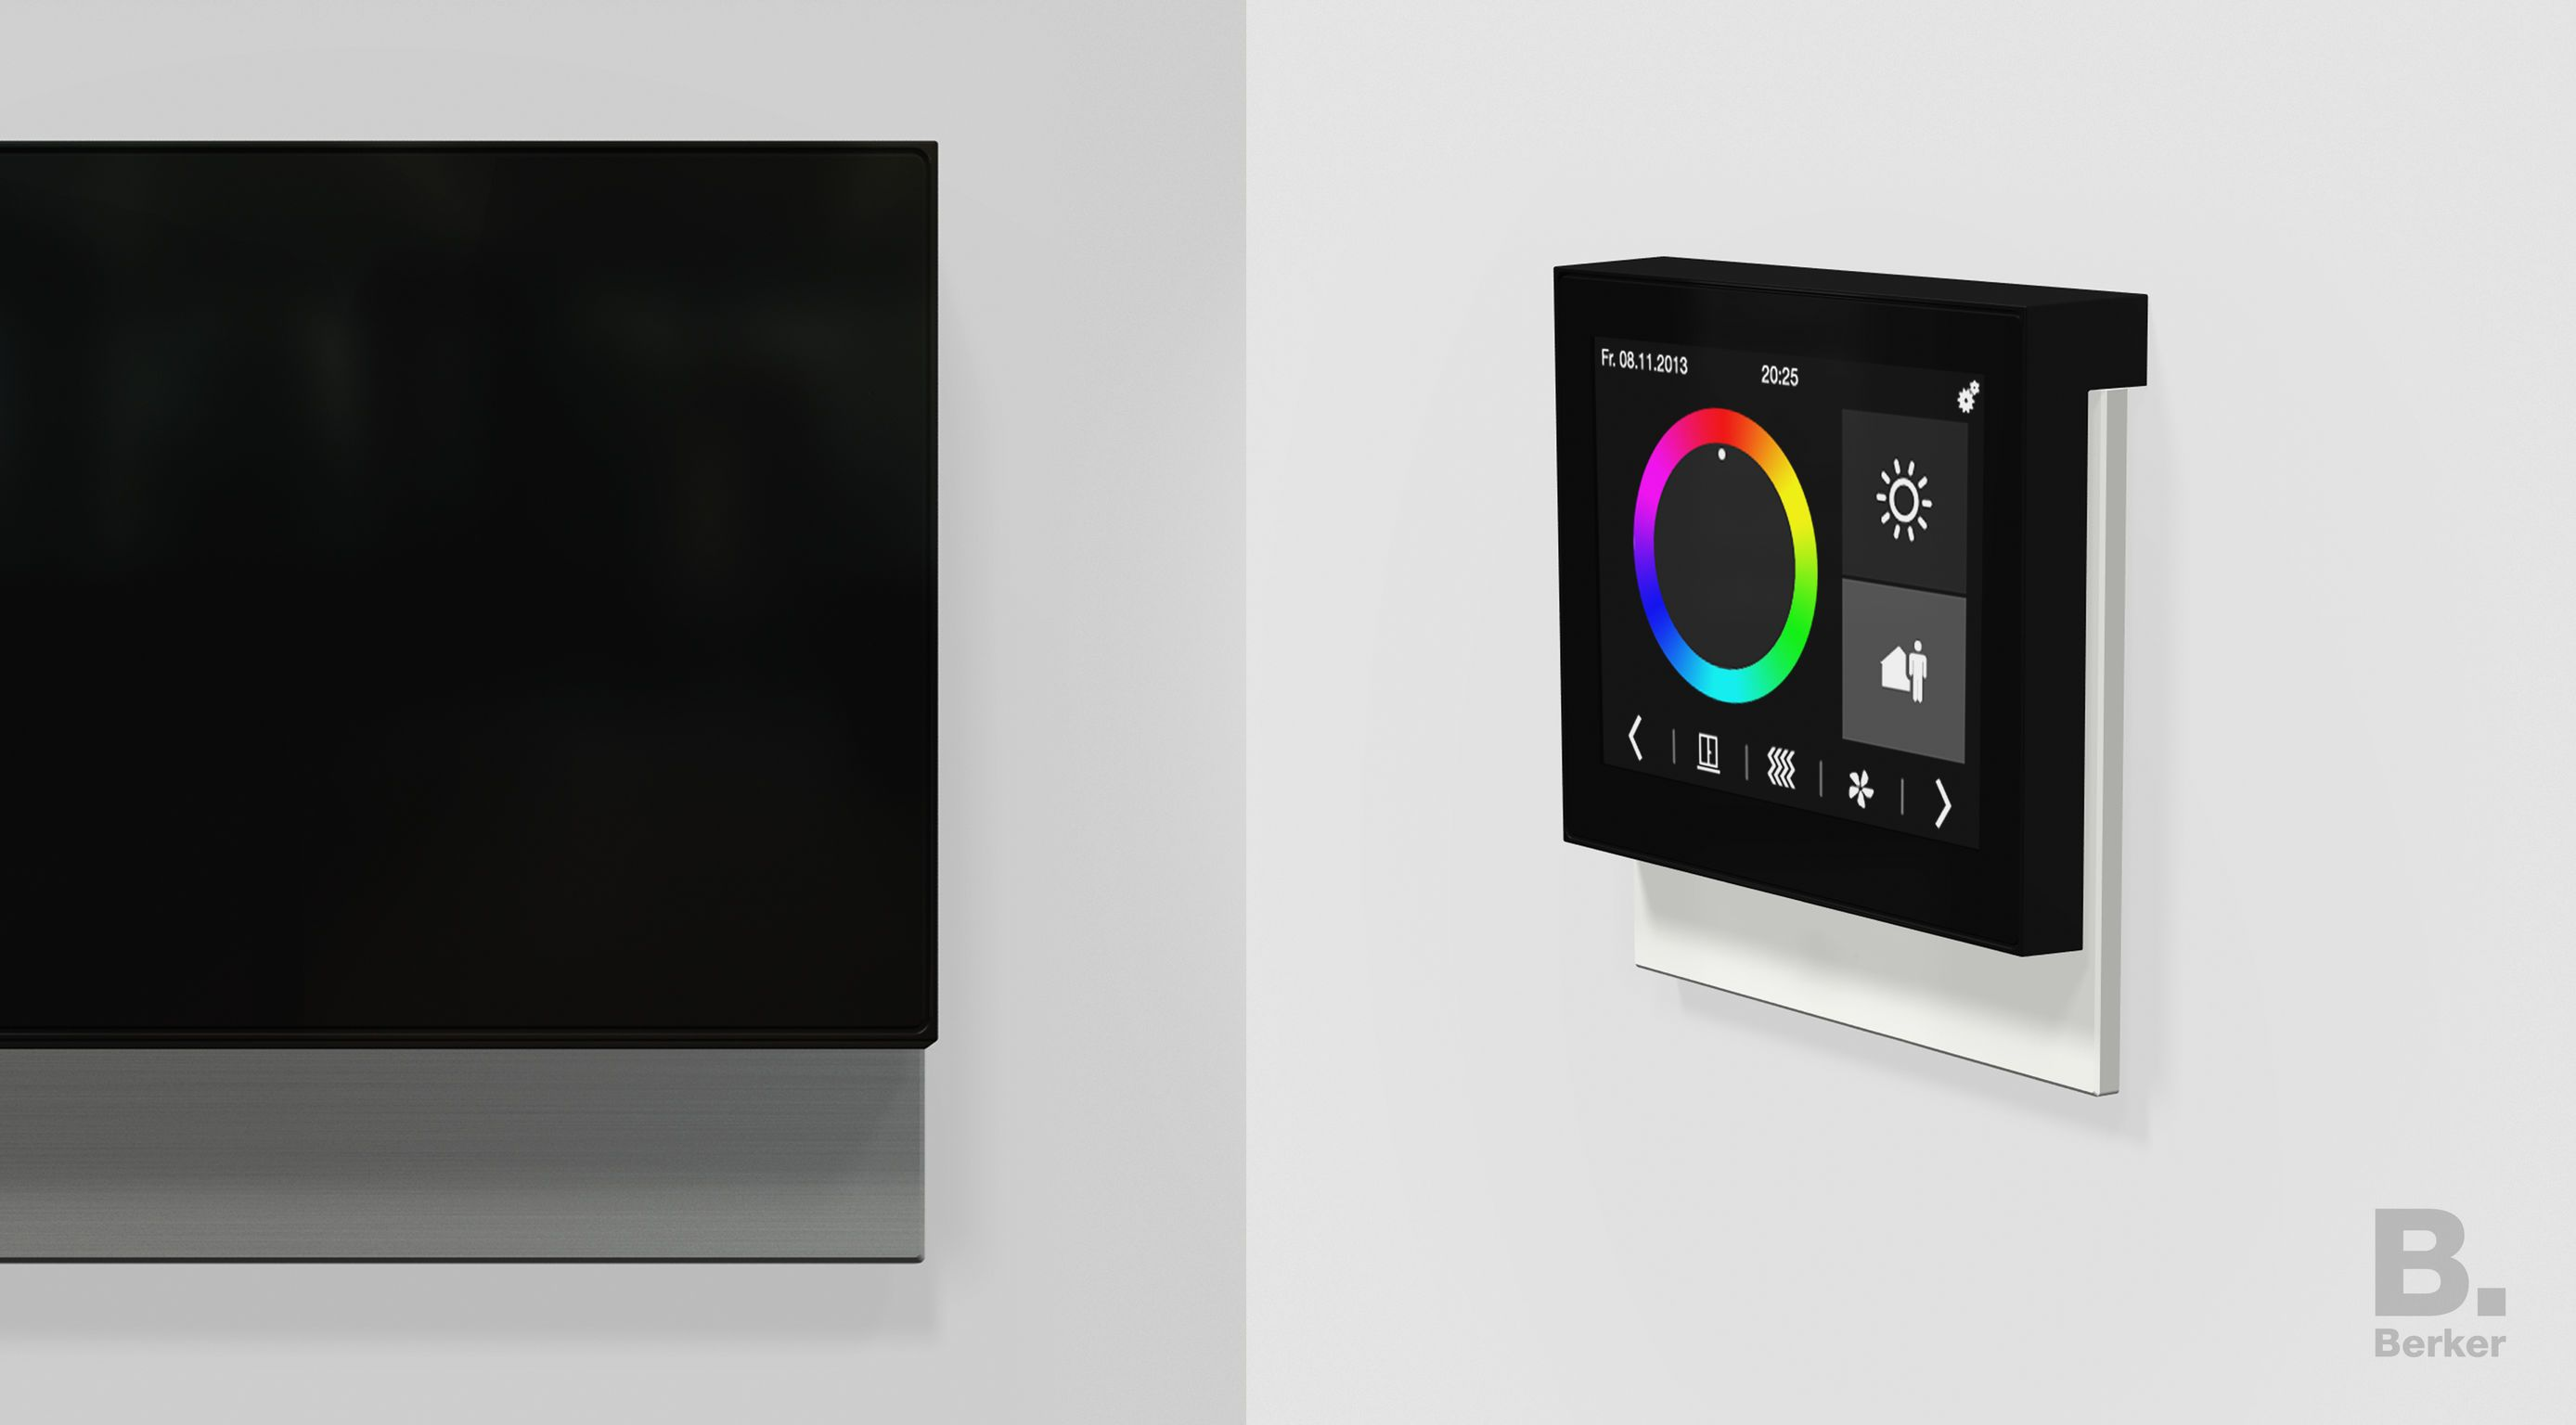 berker knx touch control the knx touch control room controller is